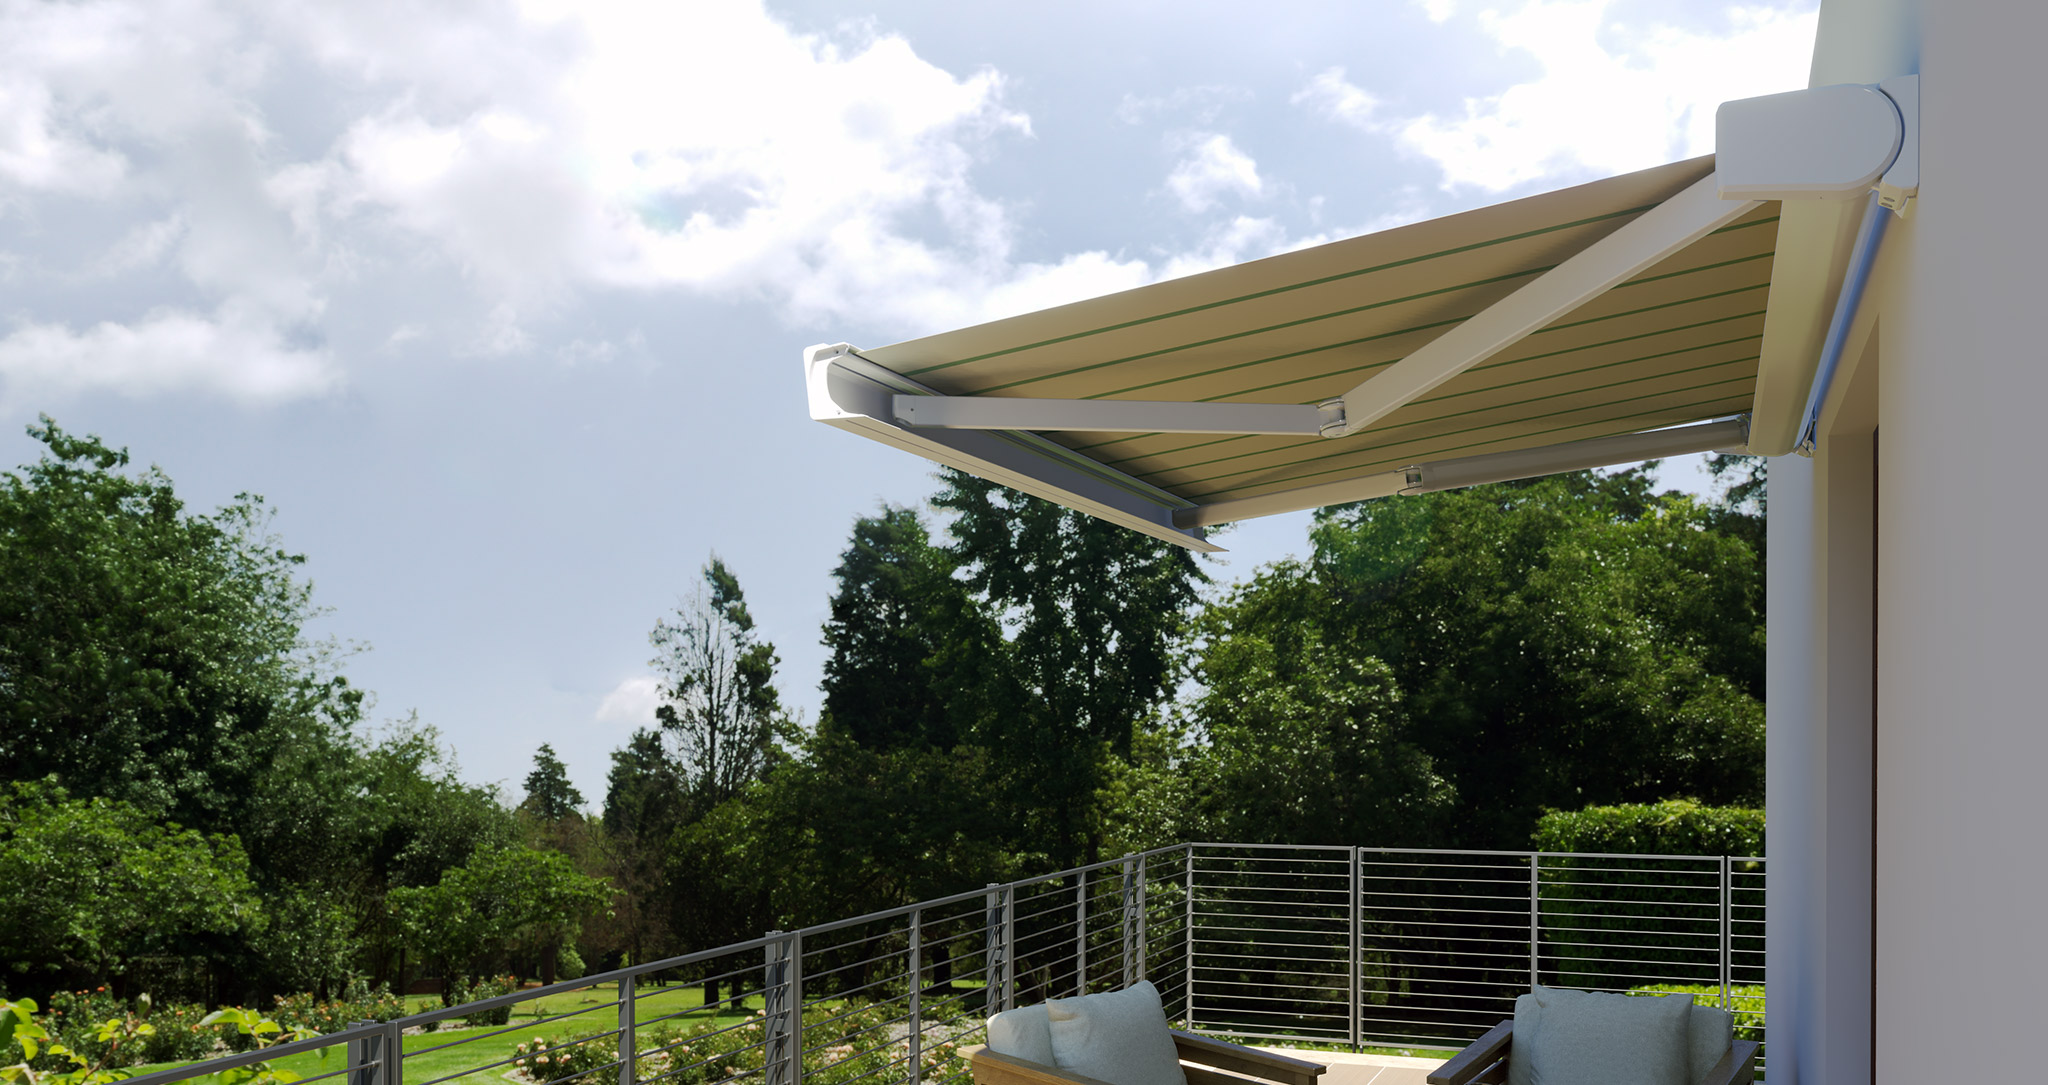 Tenda da sole Caraibi di MV Living